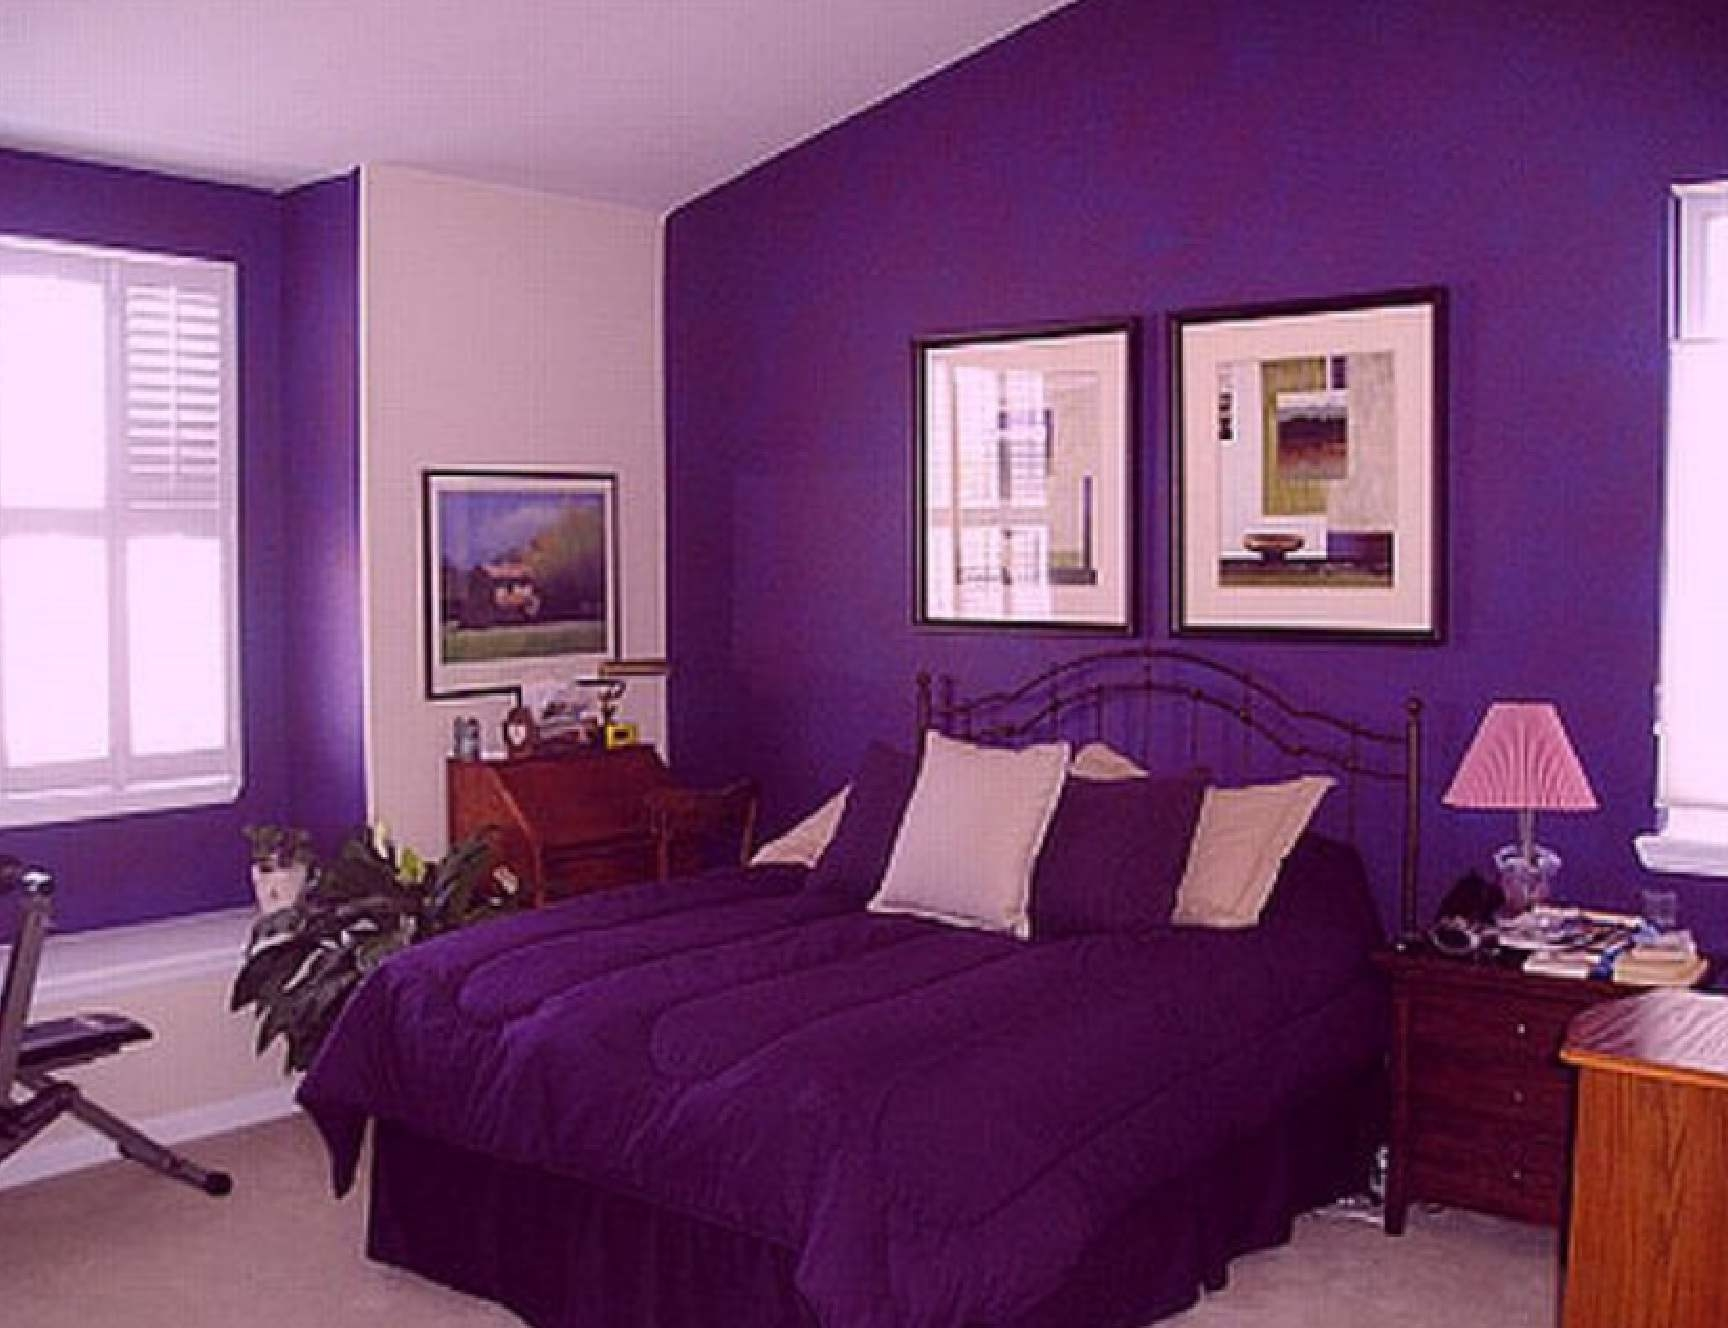 Astonishing Design Of The Purple Wall Color Ideas With Purple Bed Cover Ideas With Grey Floor Ideas